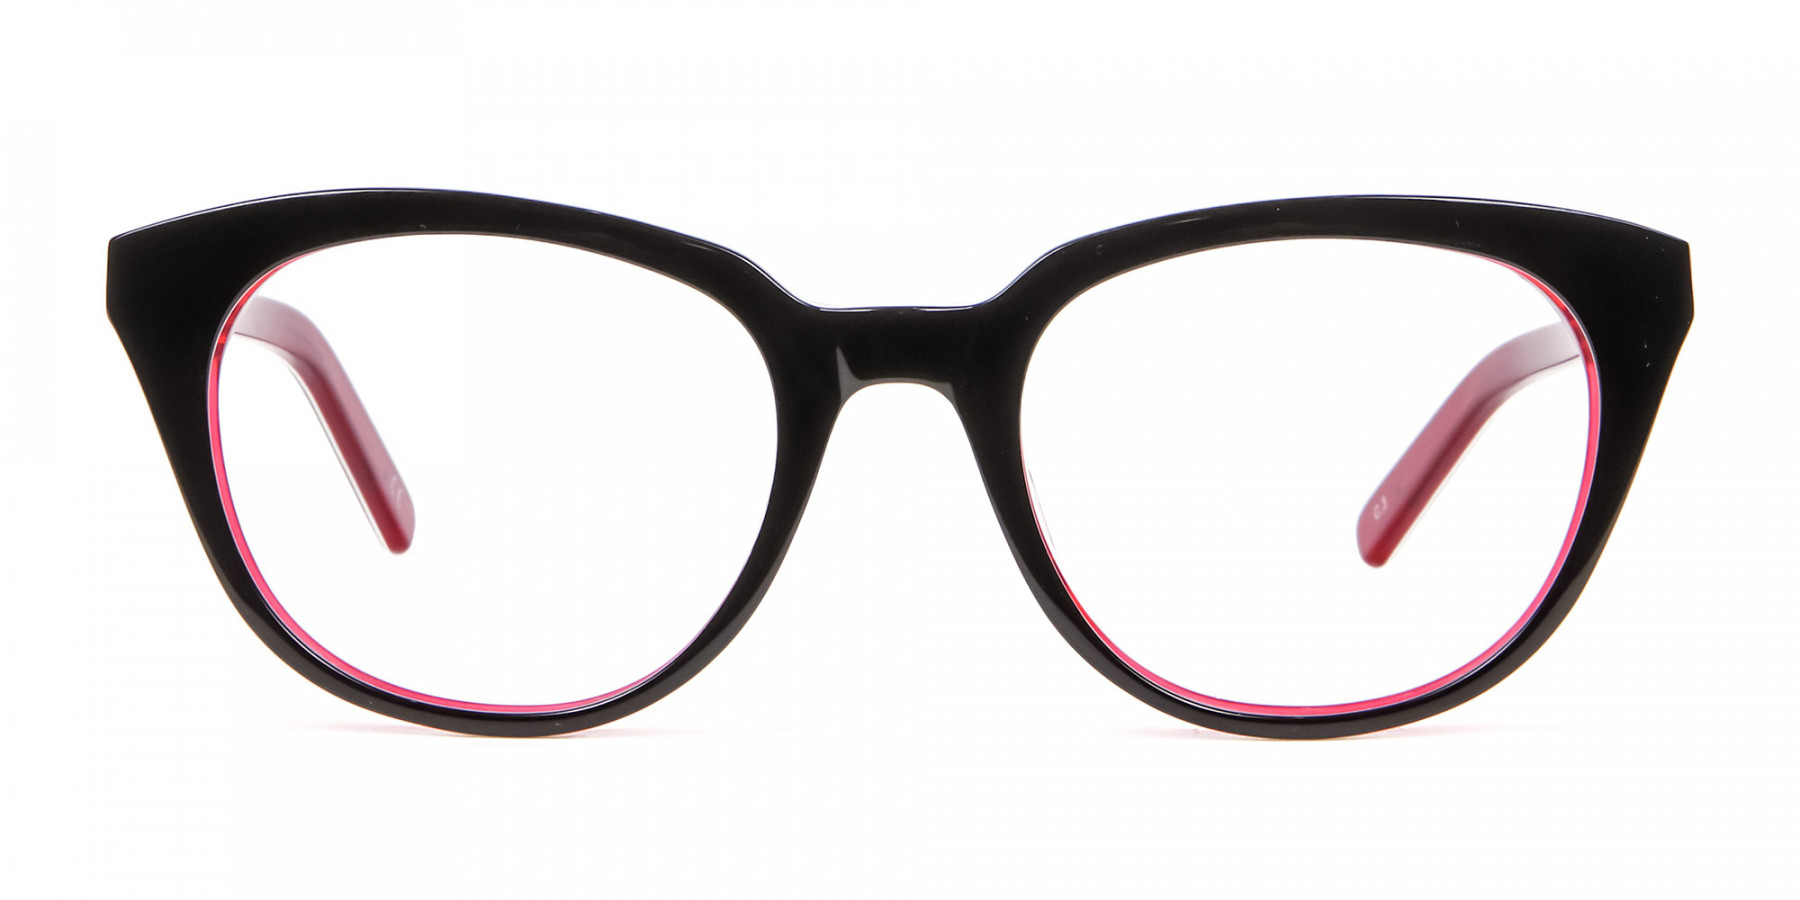 Fresh Look Cat Eye Glasses with Red and Black